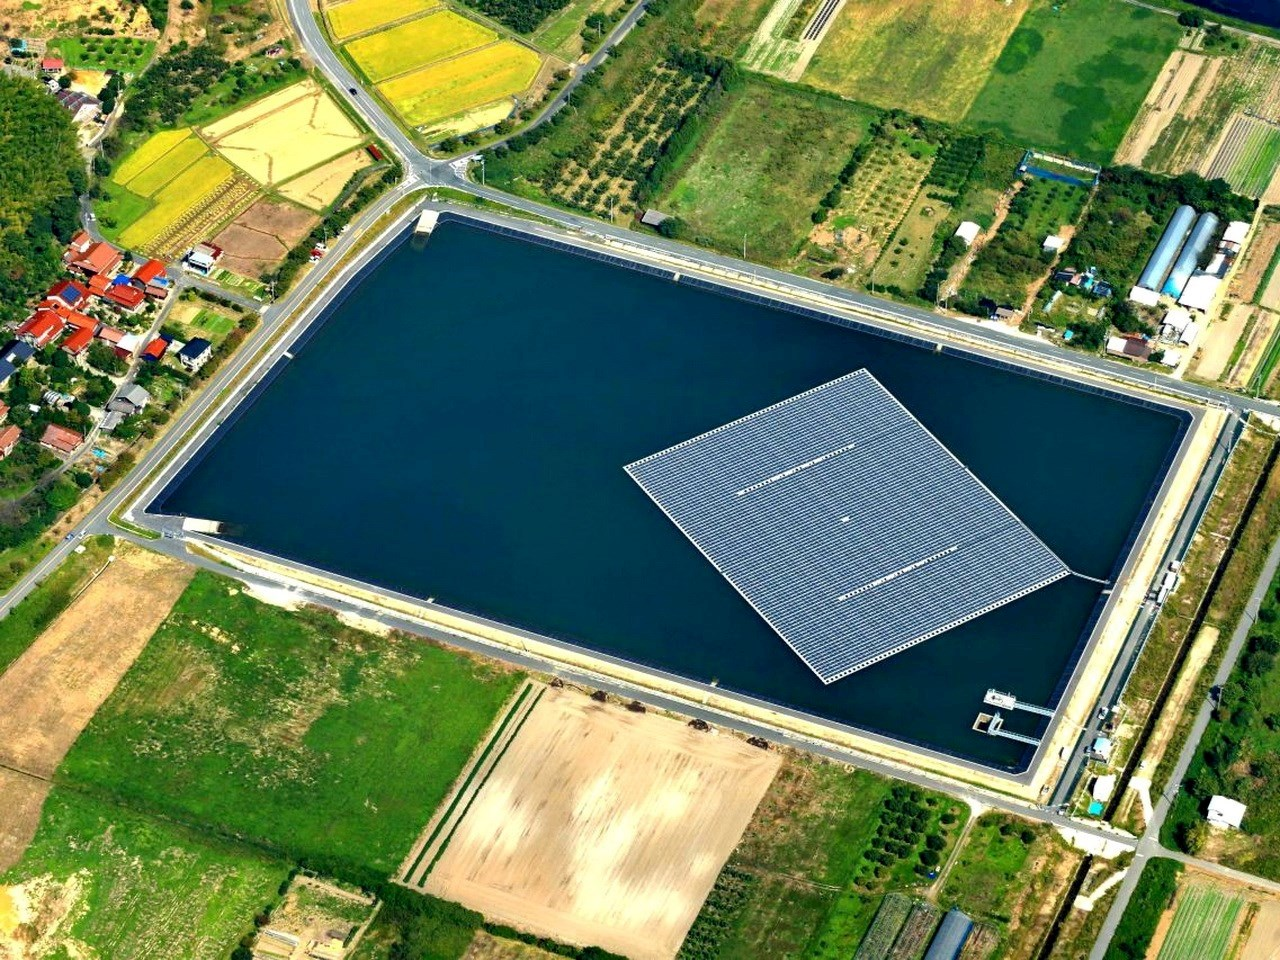 Unique patented floating solar solution by Ciel and Terre